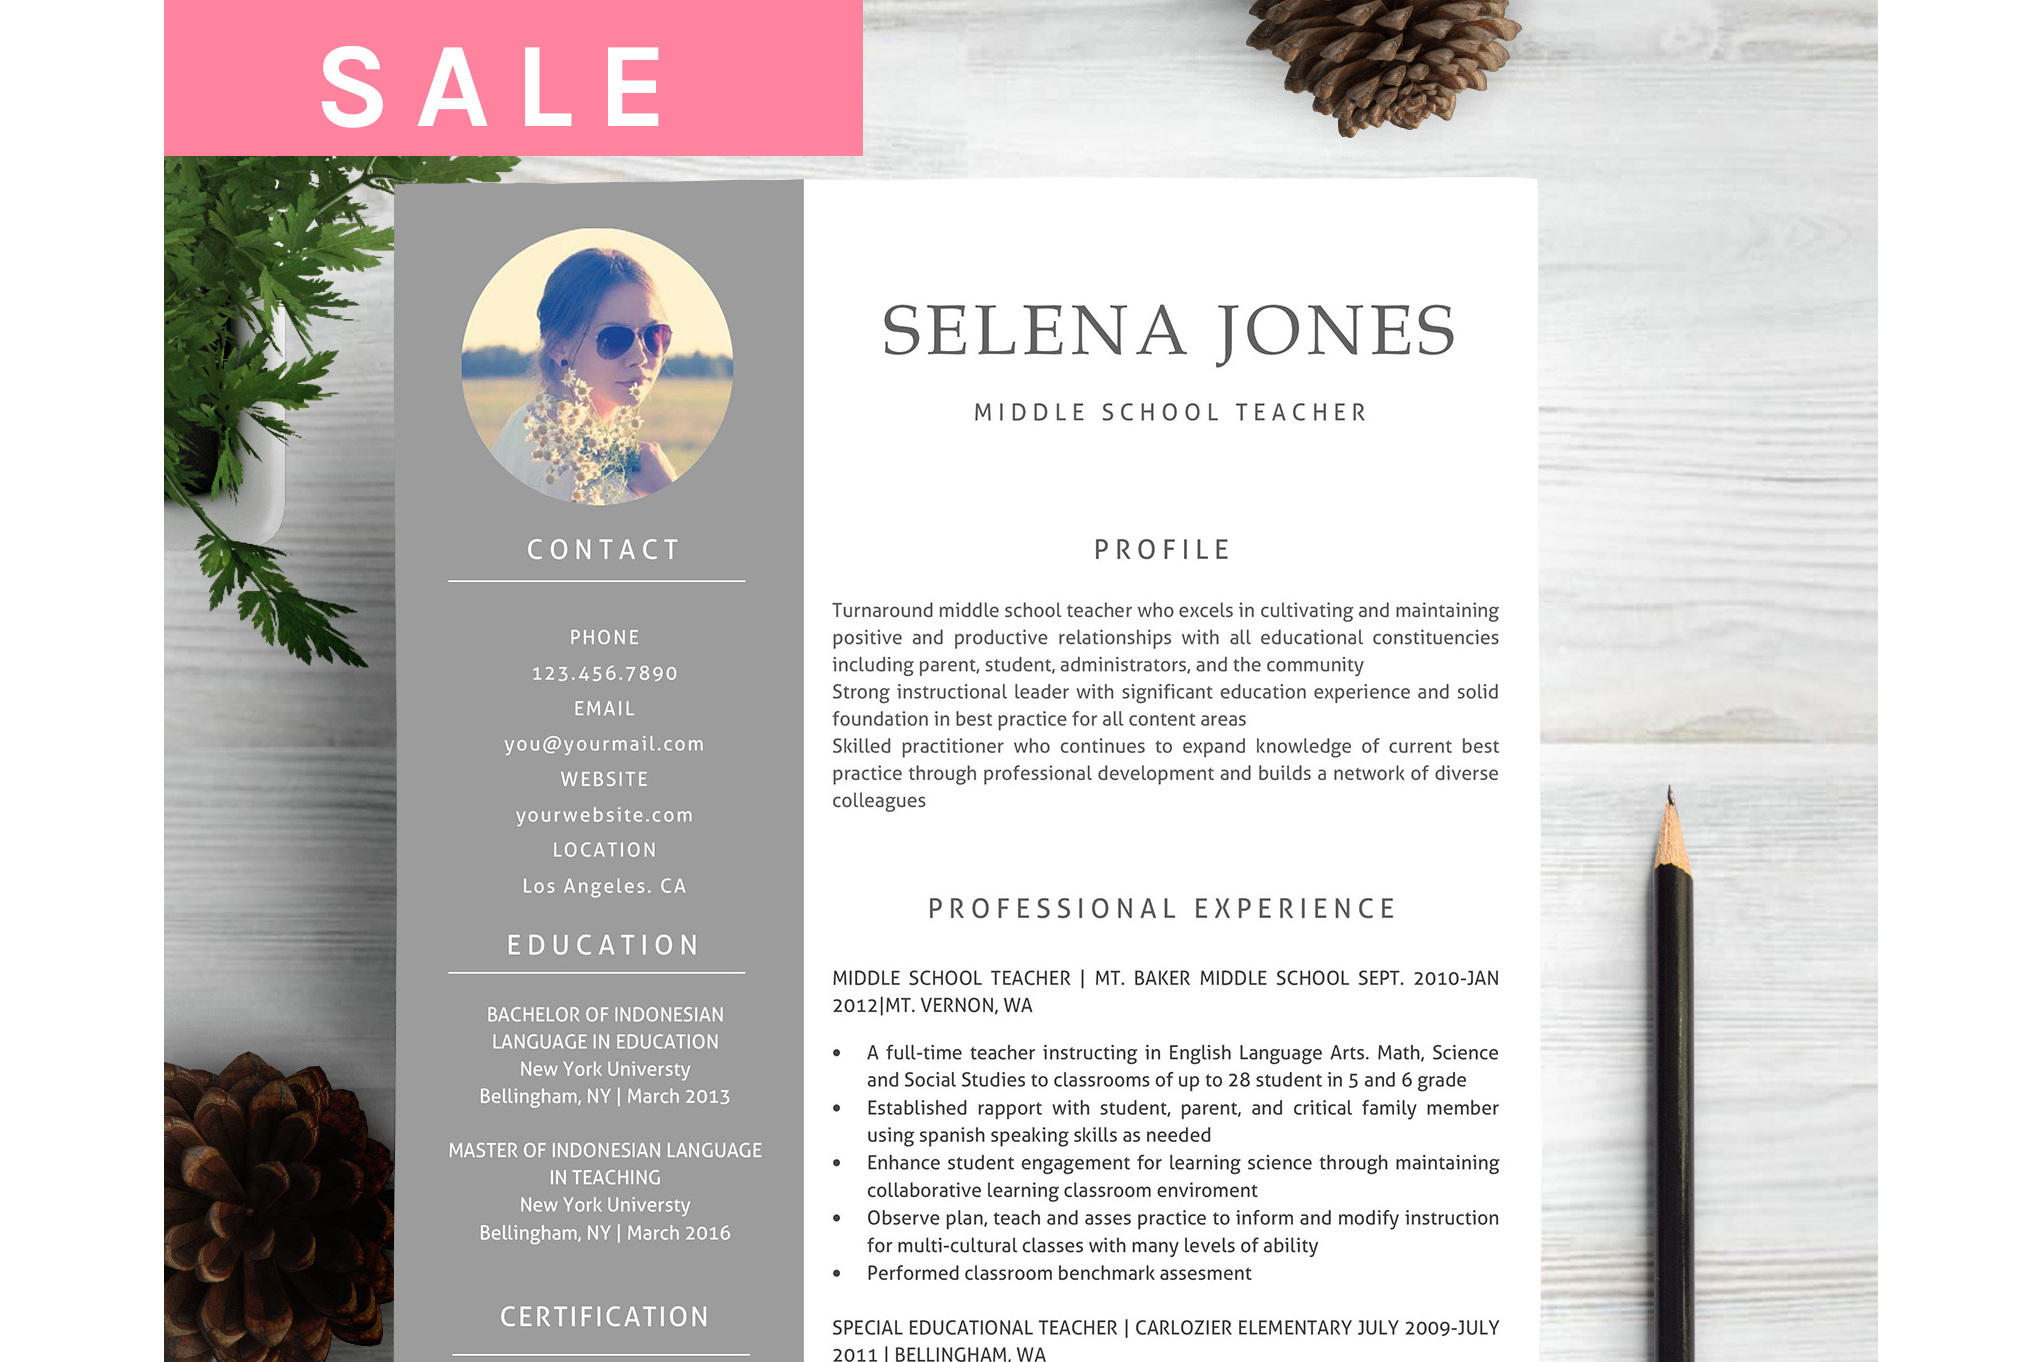 Resume Template CV Word example image 1